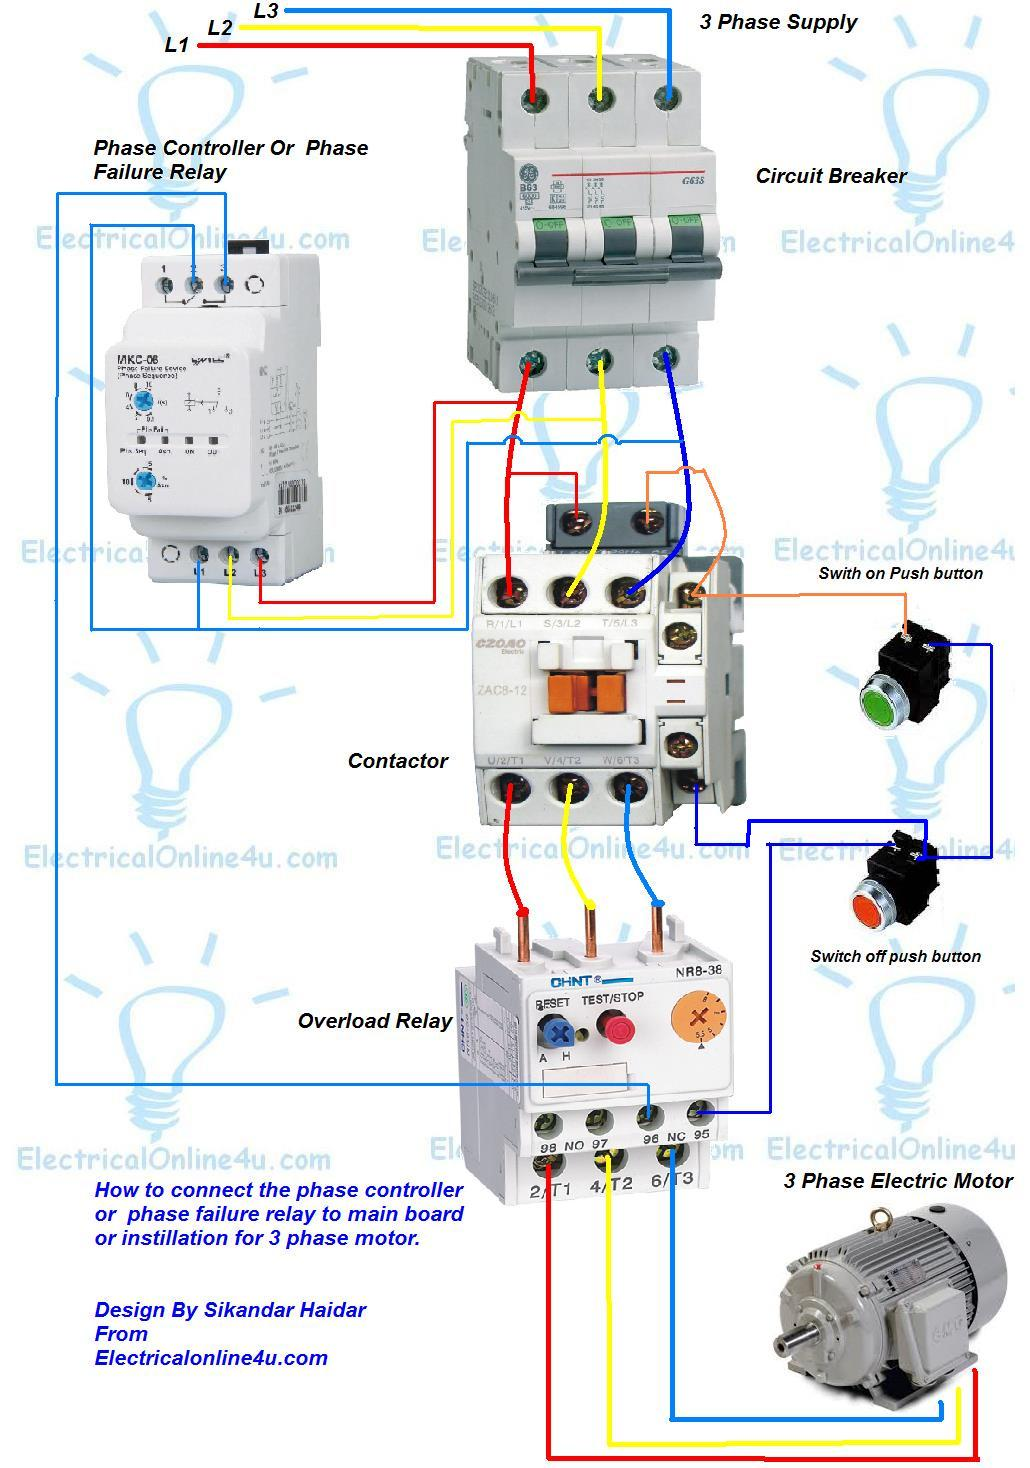 Phase%2Bfailure%2Brelay%2B %2Bphase%2Bcontroller%2Binstilaion%2Bin%2B3%2Bphase%2BMain%2Bboard%2Bor%2Bfor%2B3%2Bphase%2Bmotor phase controller wiring phase failure relay diagram electrical 3 phase motor control wiring diagram at love-stories.co